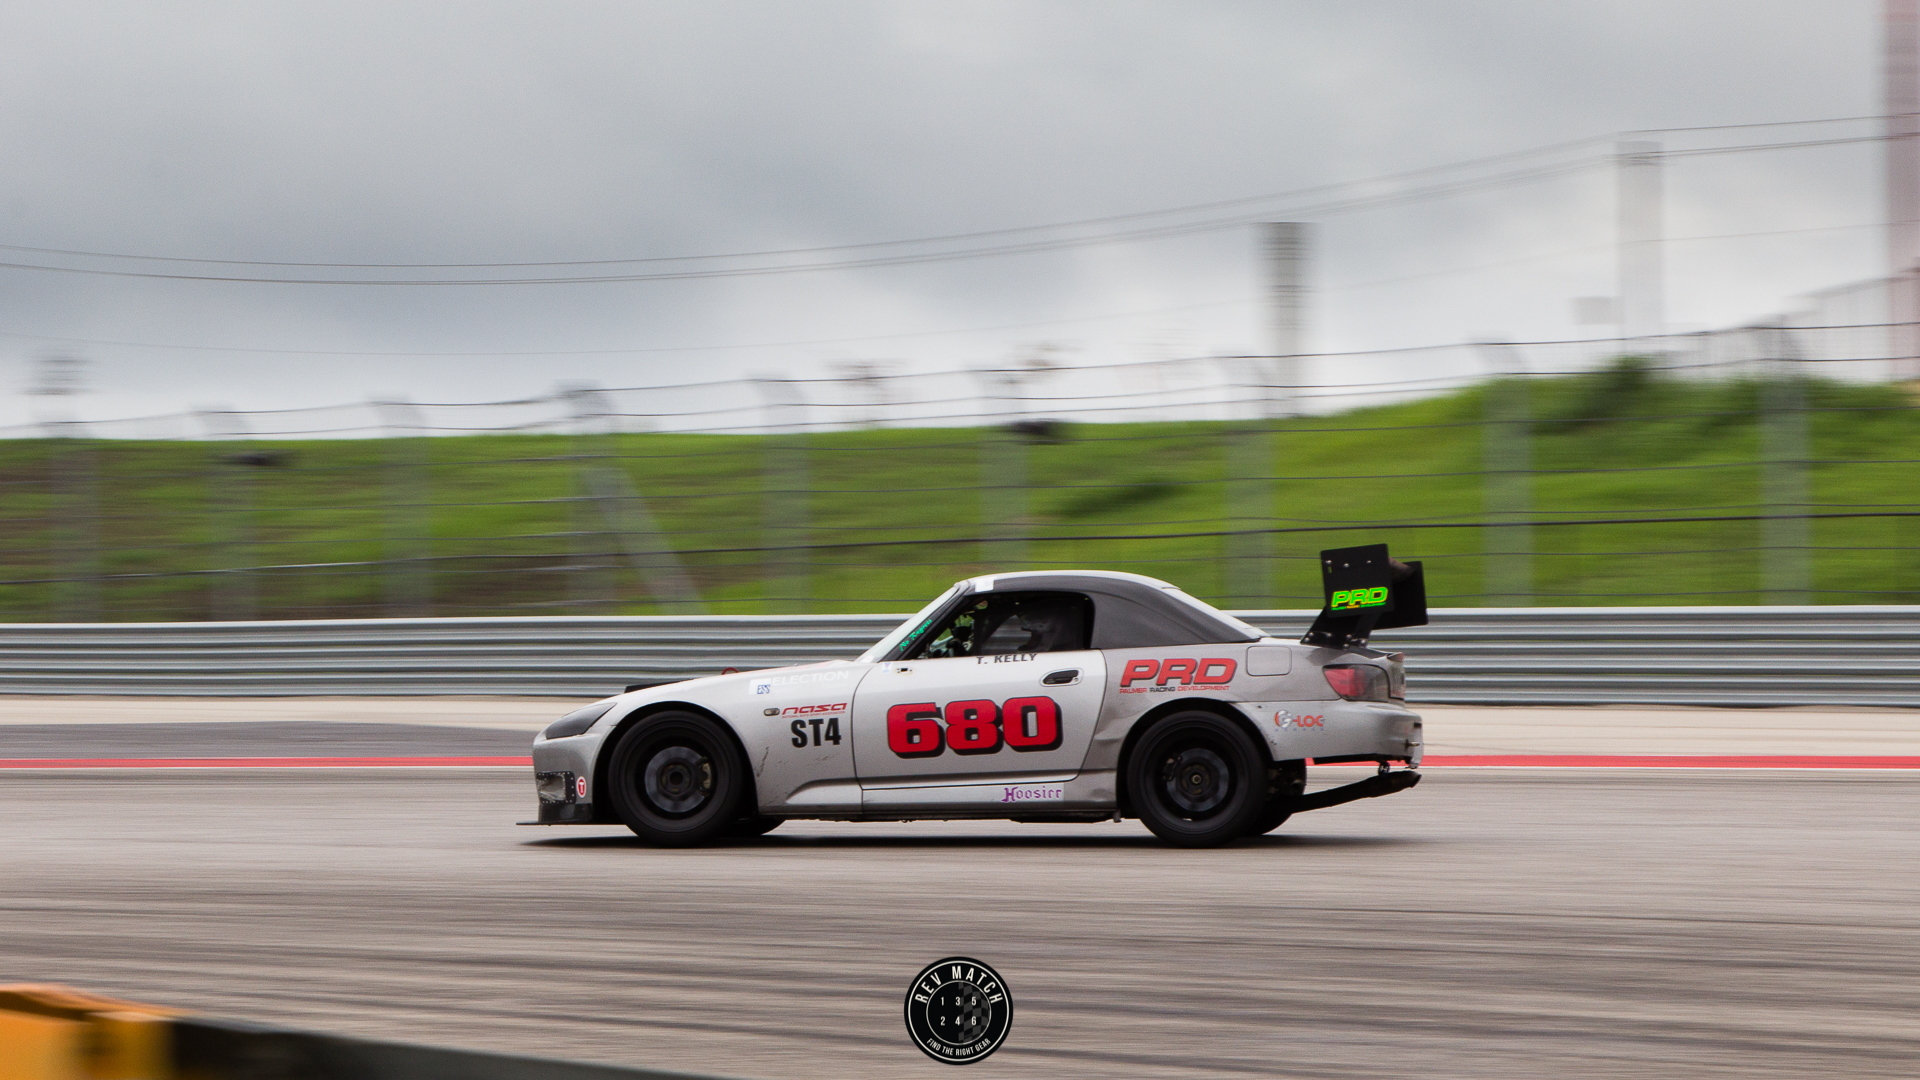 RMM x NASA at COTA 2018-140.jpg